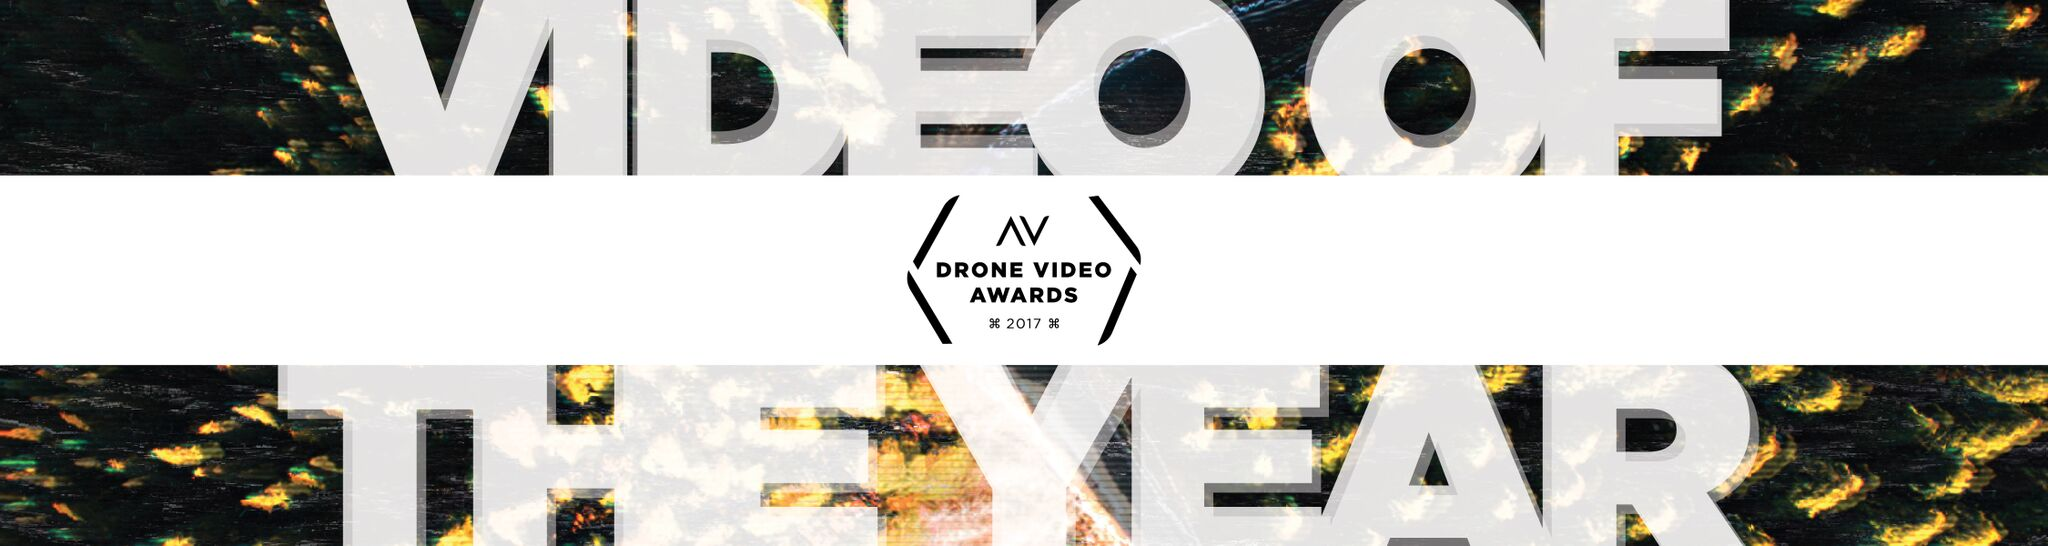 AirVūz Drone Video Awards: Video of the Year